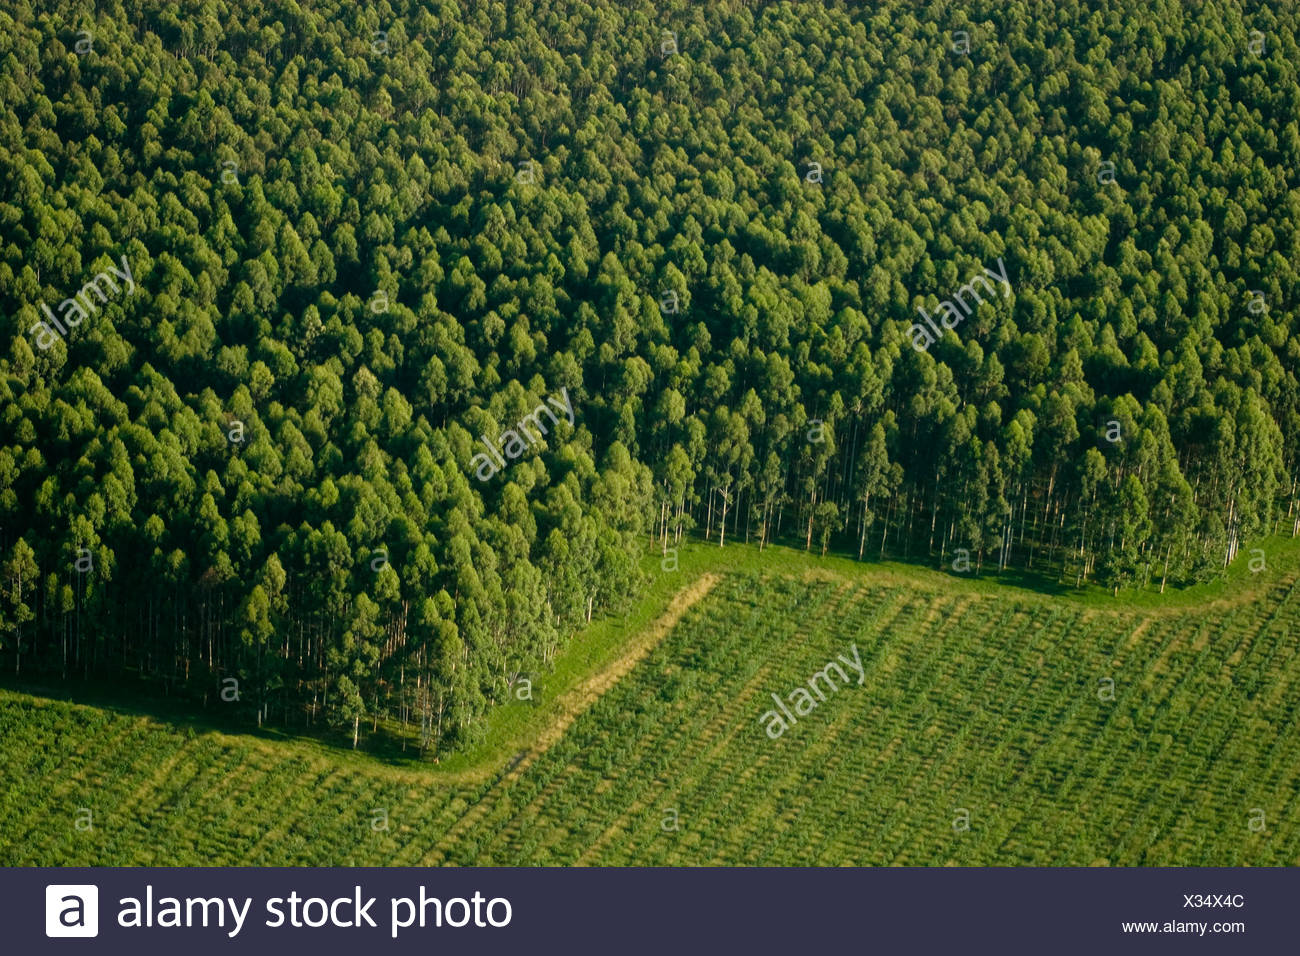 Aerial View Of Eucalyptus Trees At A Commercial Tree Farm Harvested Trees Are Exported As Logs Or Chips For The Paper Industry Stock Photo Alamy